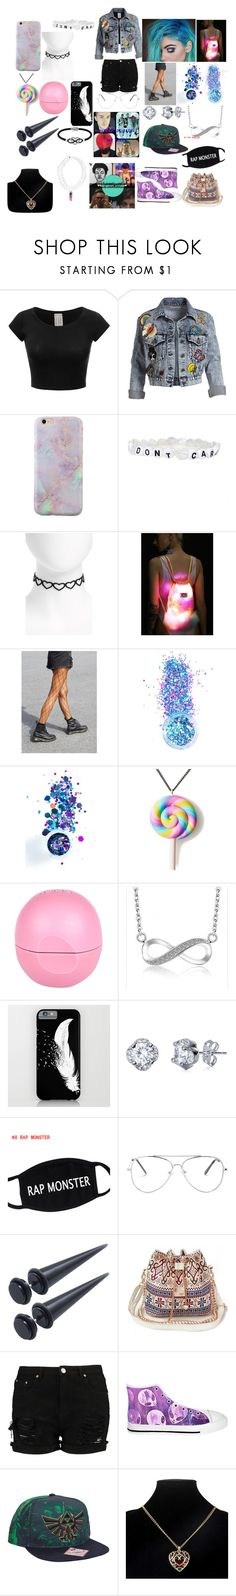 """""""#131 SPACECAMP TOUR 2017"""" by spider-1505 on Polyvore featuring Mode, Alice + Olivia, Topshop, J. Valentine, In Your Dreams, Unicorn Crafts, River Island und Jewel Exclusive"""